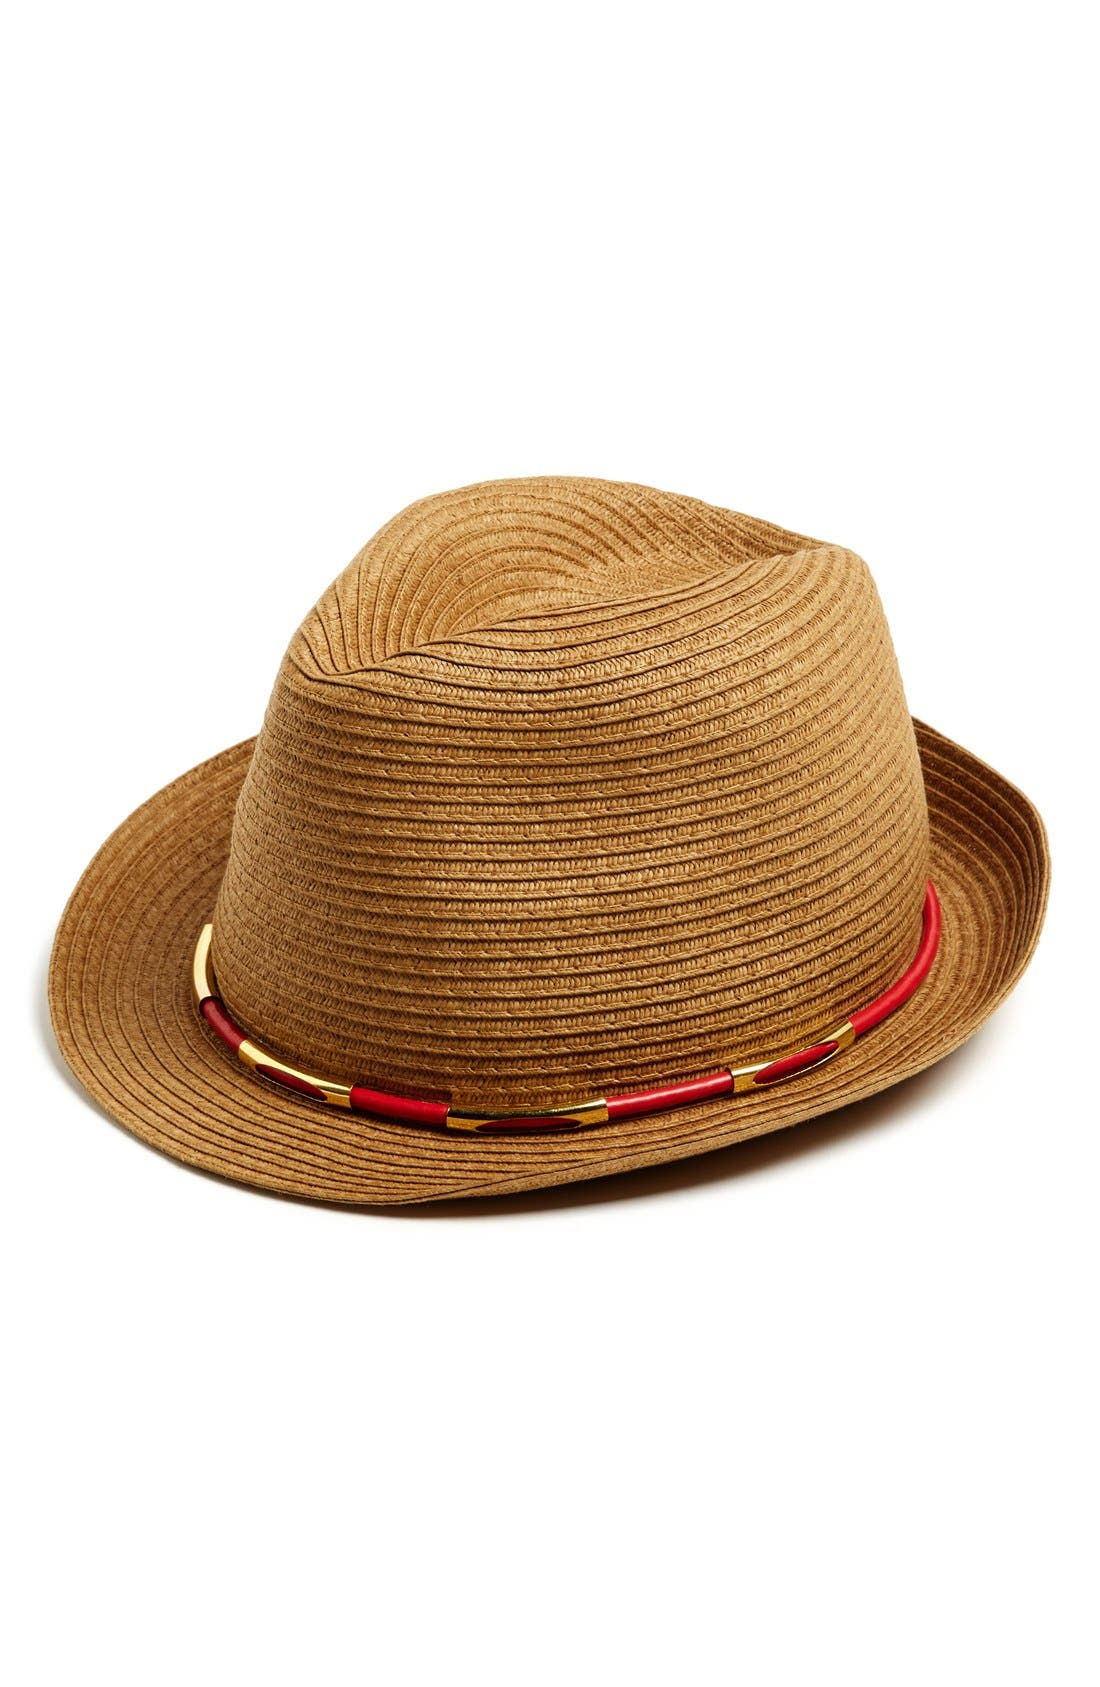 Alternate Image 1 Selected - Vince Camuto Metal Accent Fedora